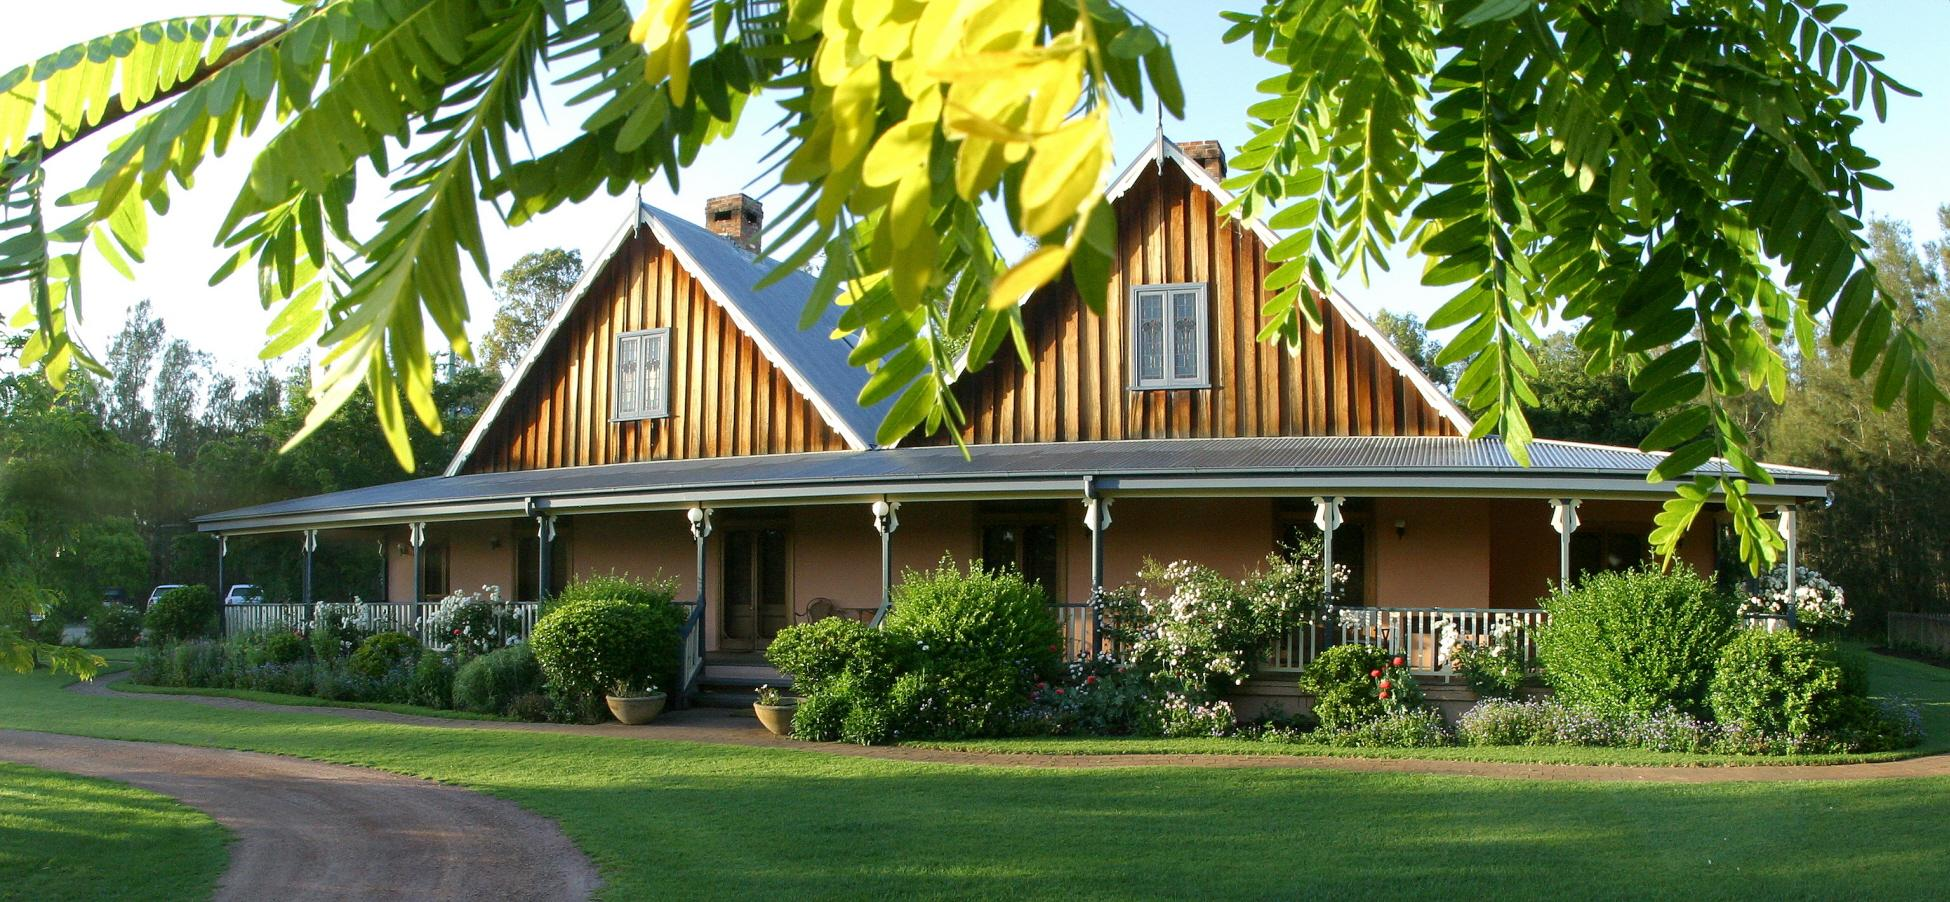 Carriages Boutique Hotel & Vineyard